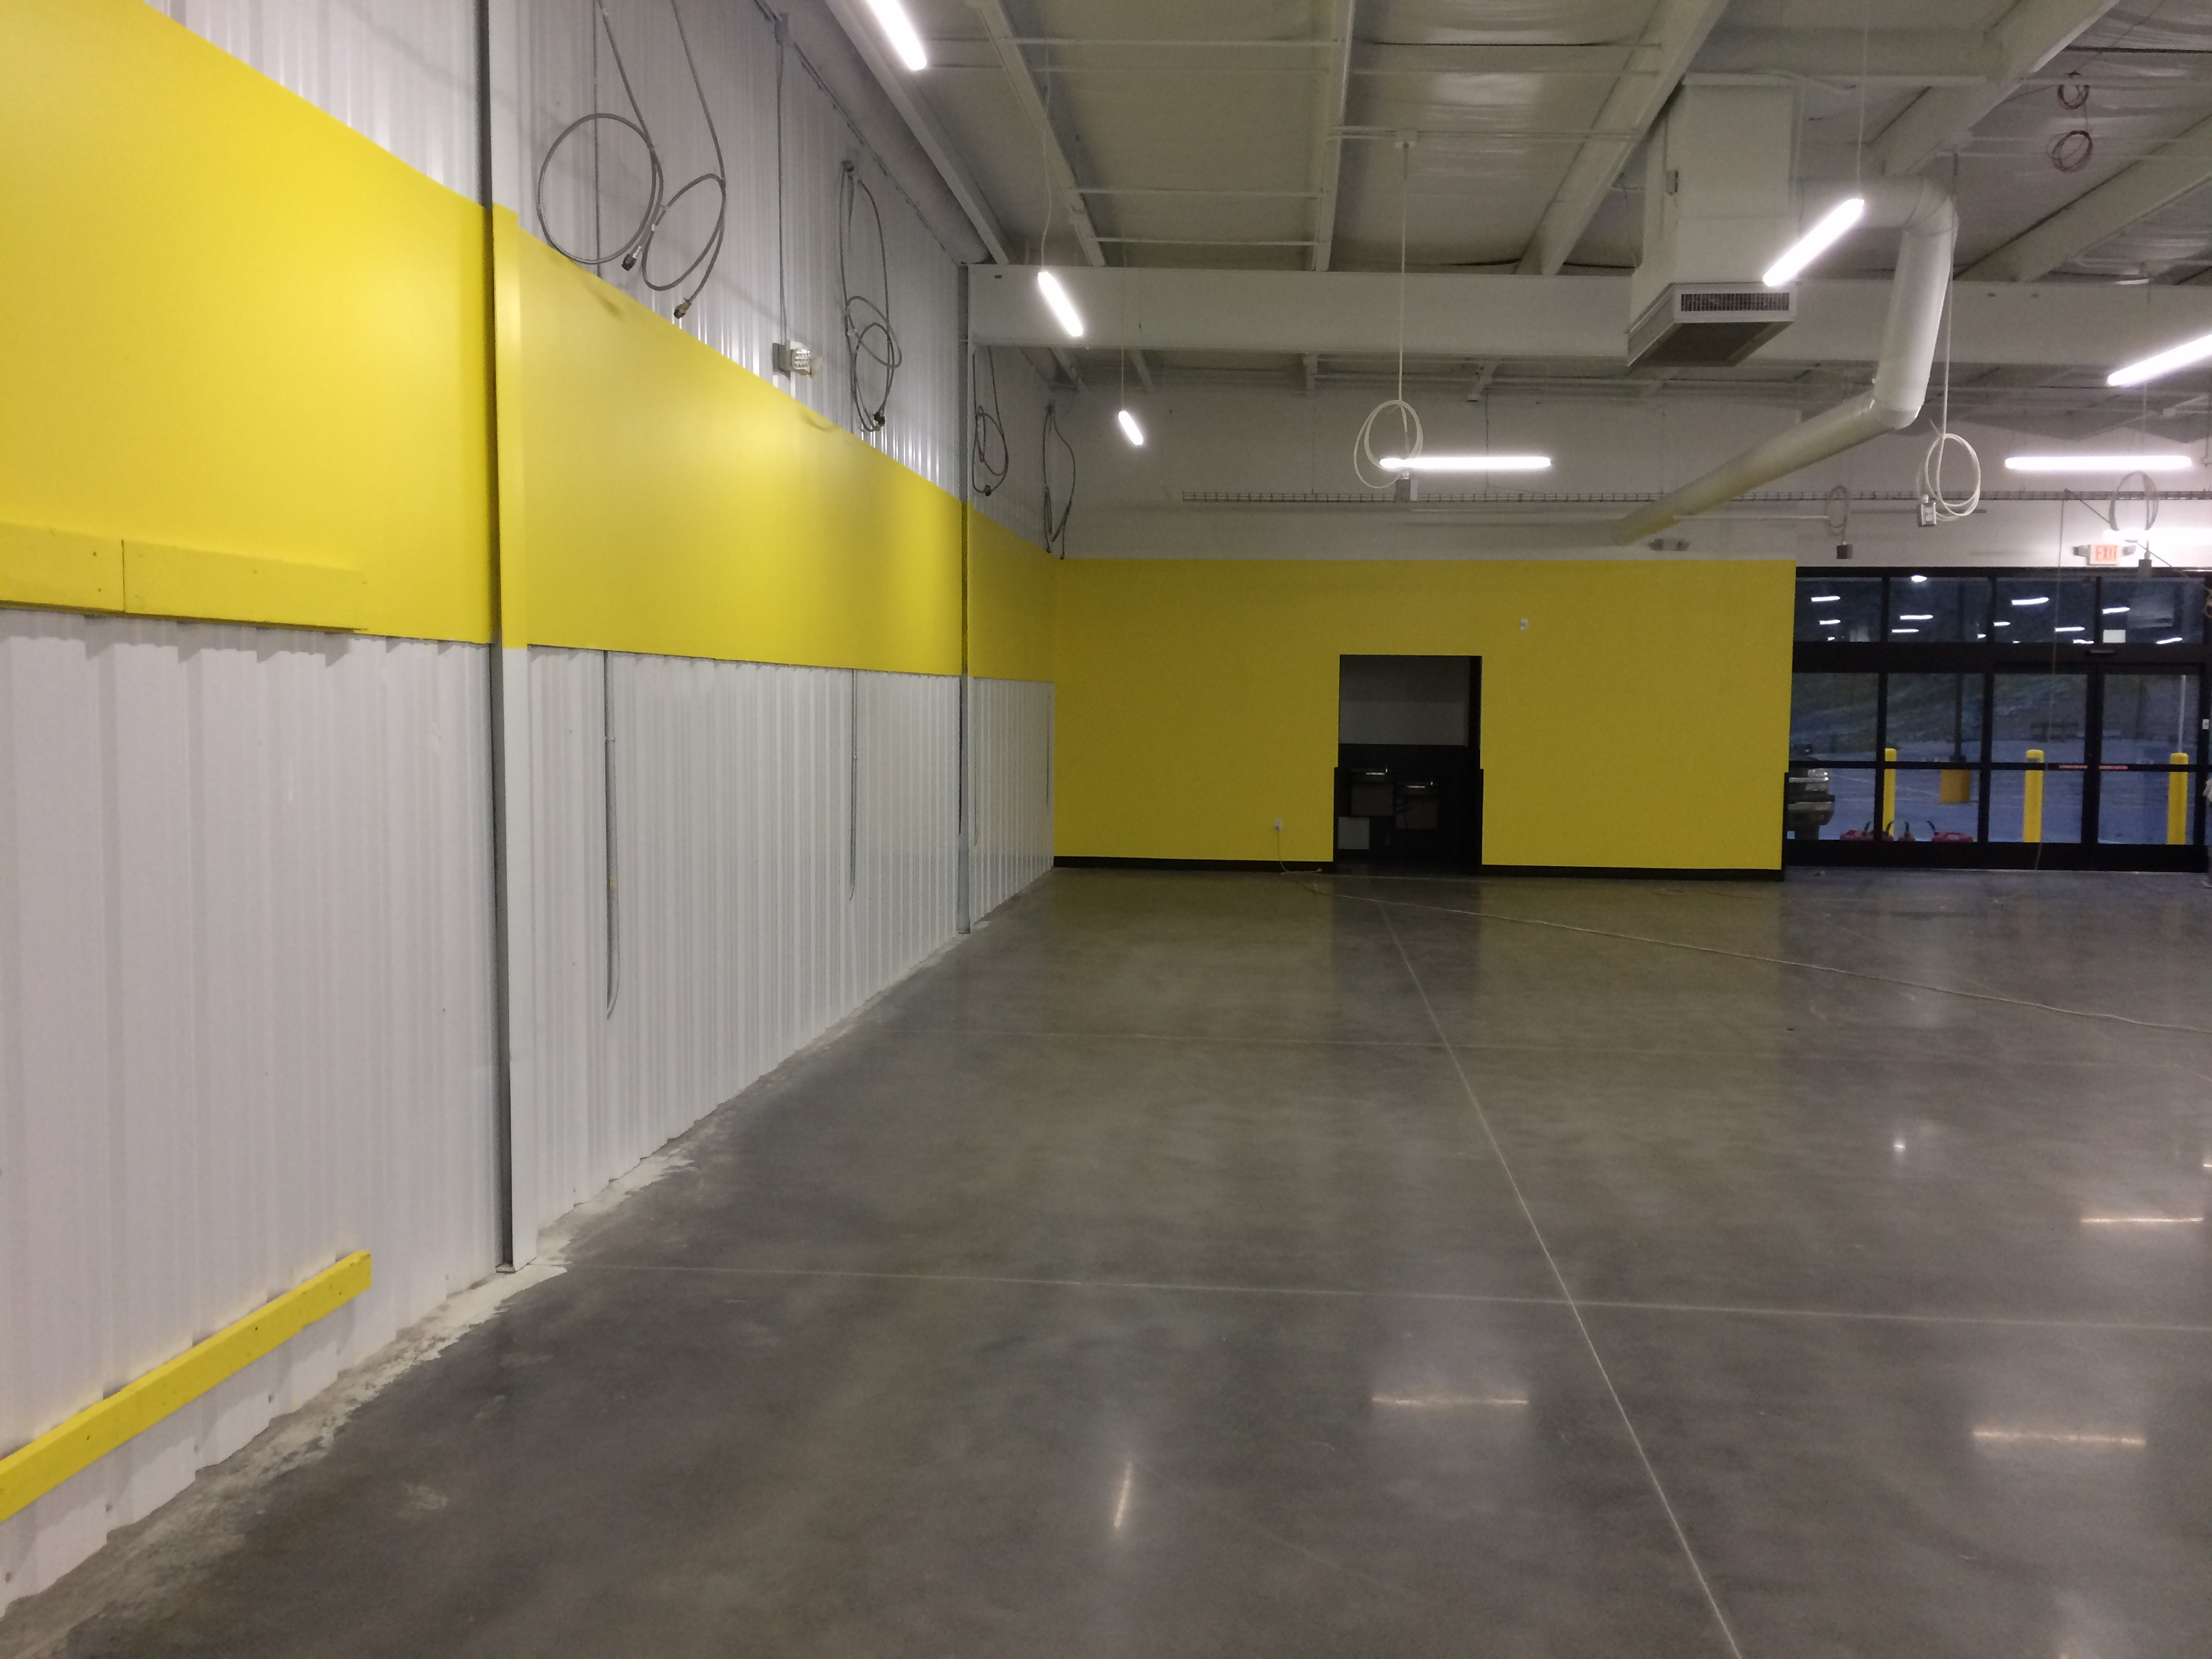 inside 2, dollar general, foster wv,, shopping, supermarket, retail, commercial, commercial construction